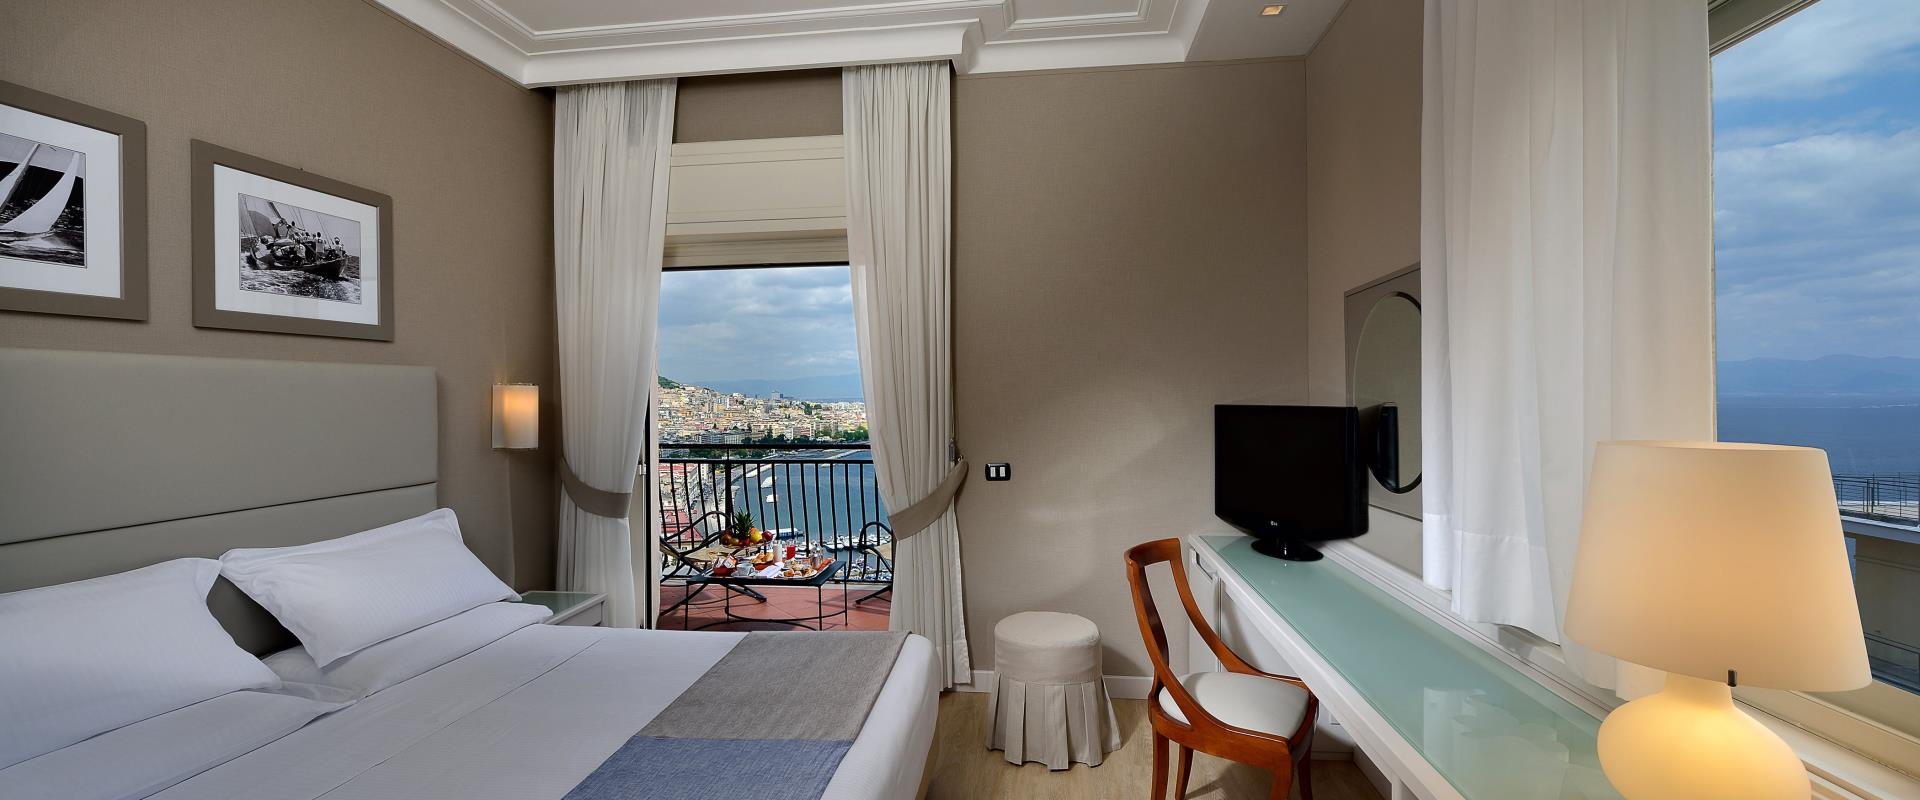 Sea View Double Room à travers le golfe de Naples - Hôtel Paradiso Naples